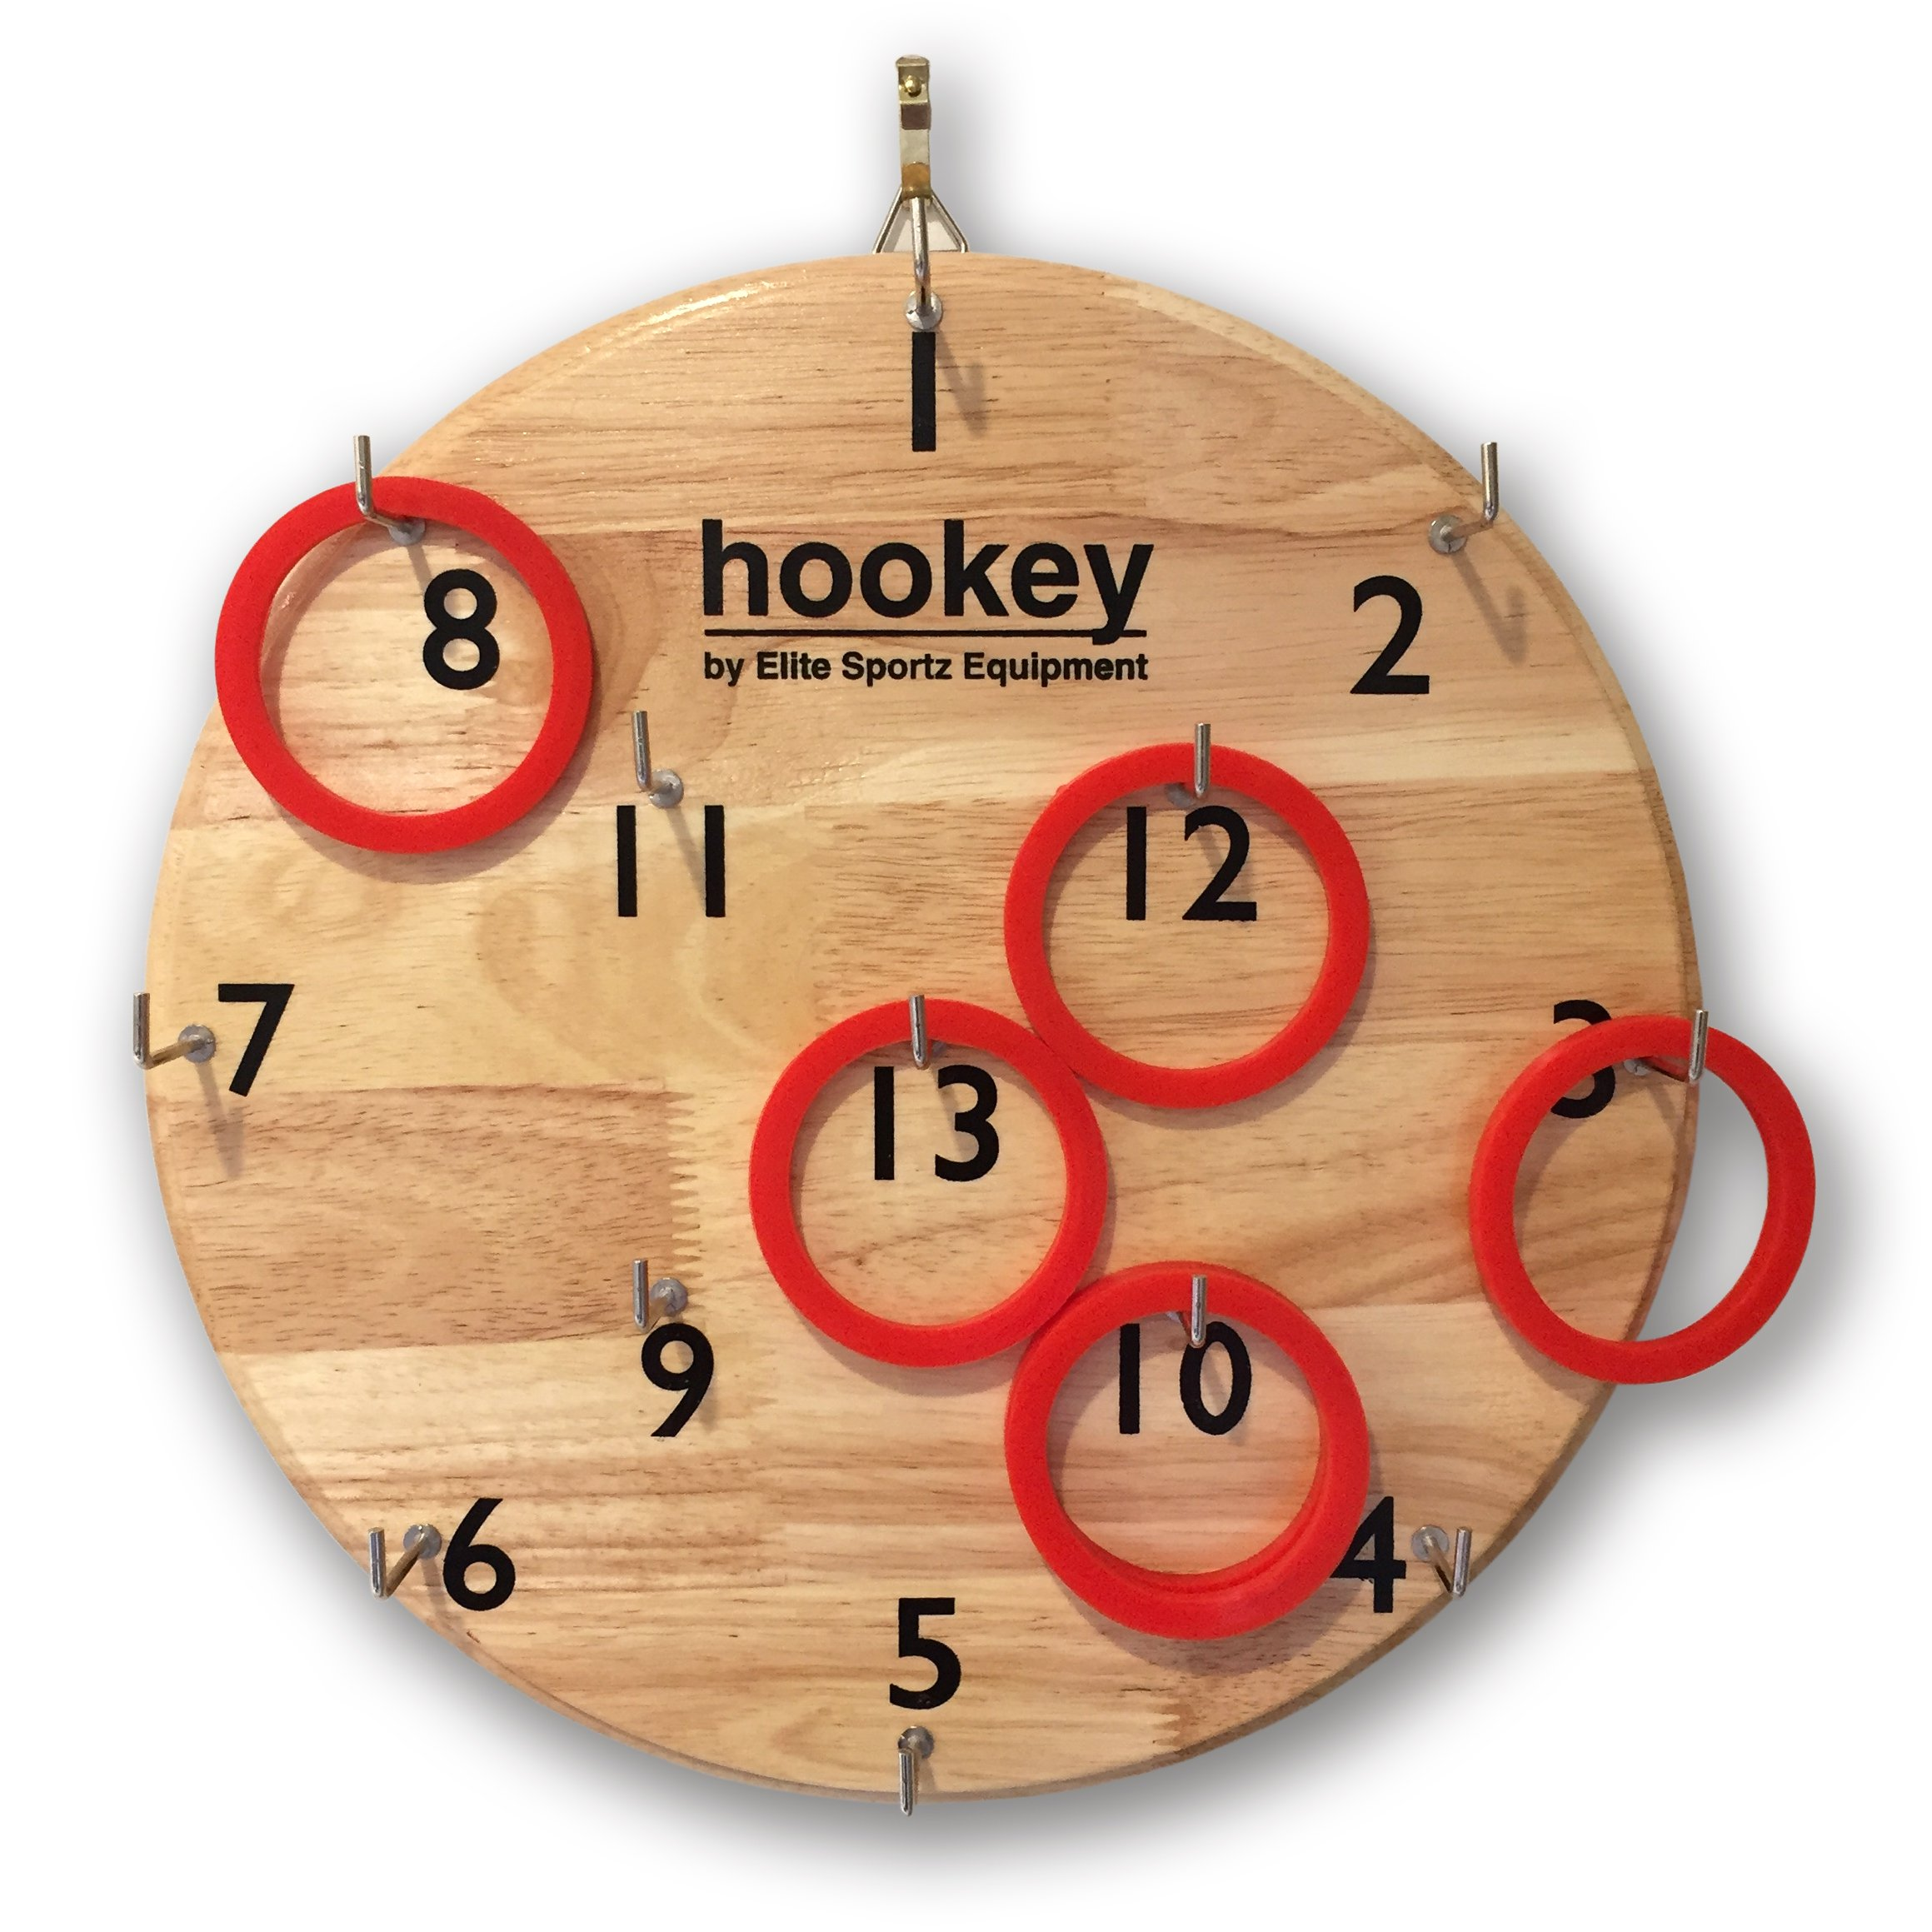 Elite Hookey Ring Toss Game - Safer Than Darts, Just Hang it on a Wall and Start Playing. Fun Outdoor Games for Family. It's Beautifully Finished and Easy to Set-Up for a Man Cave, Home or Office. by Elite Sportz Equipment